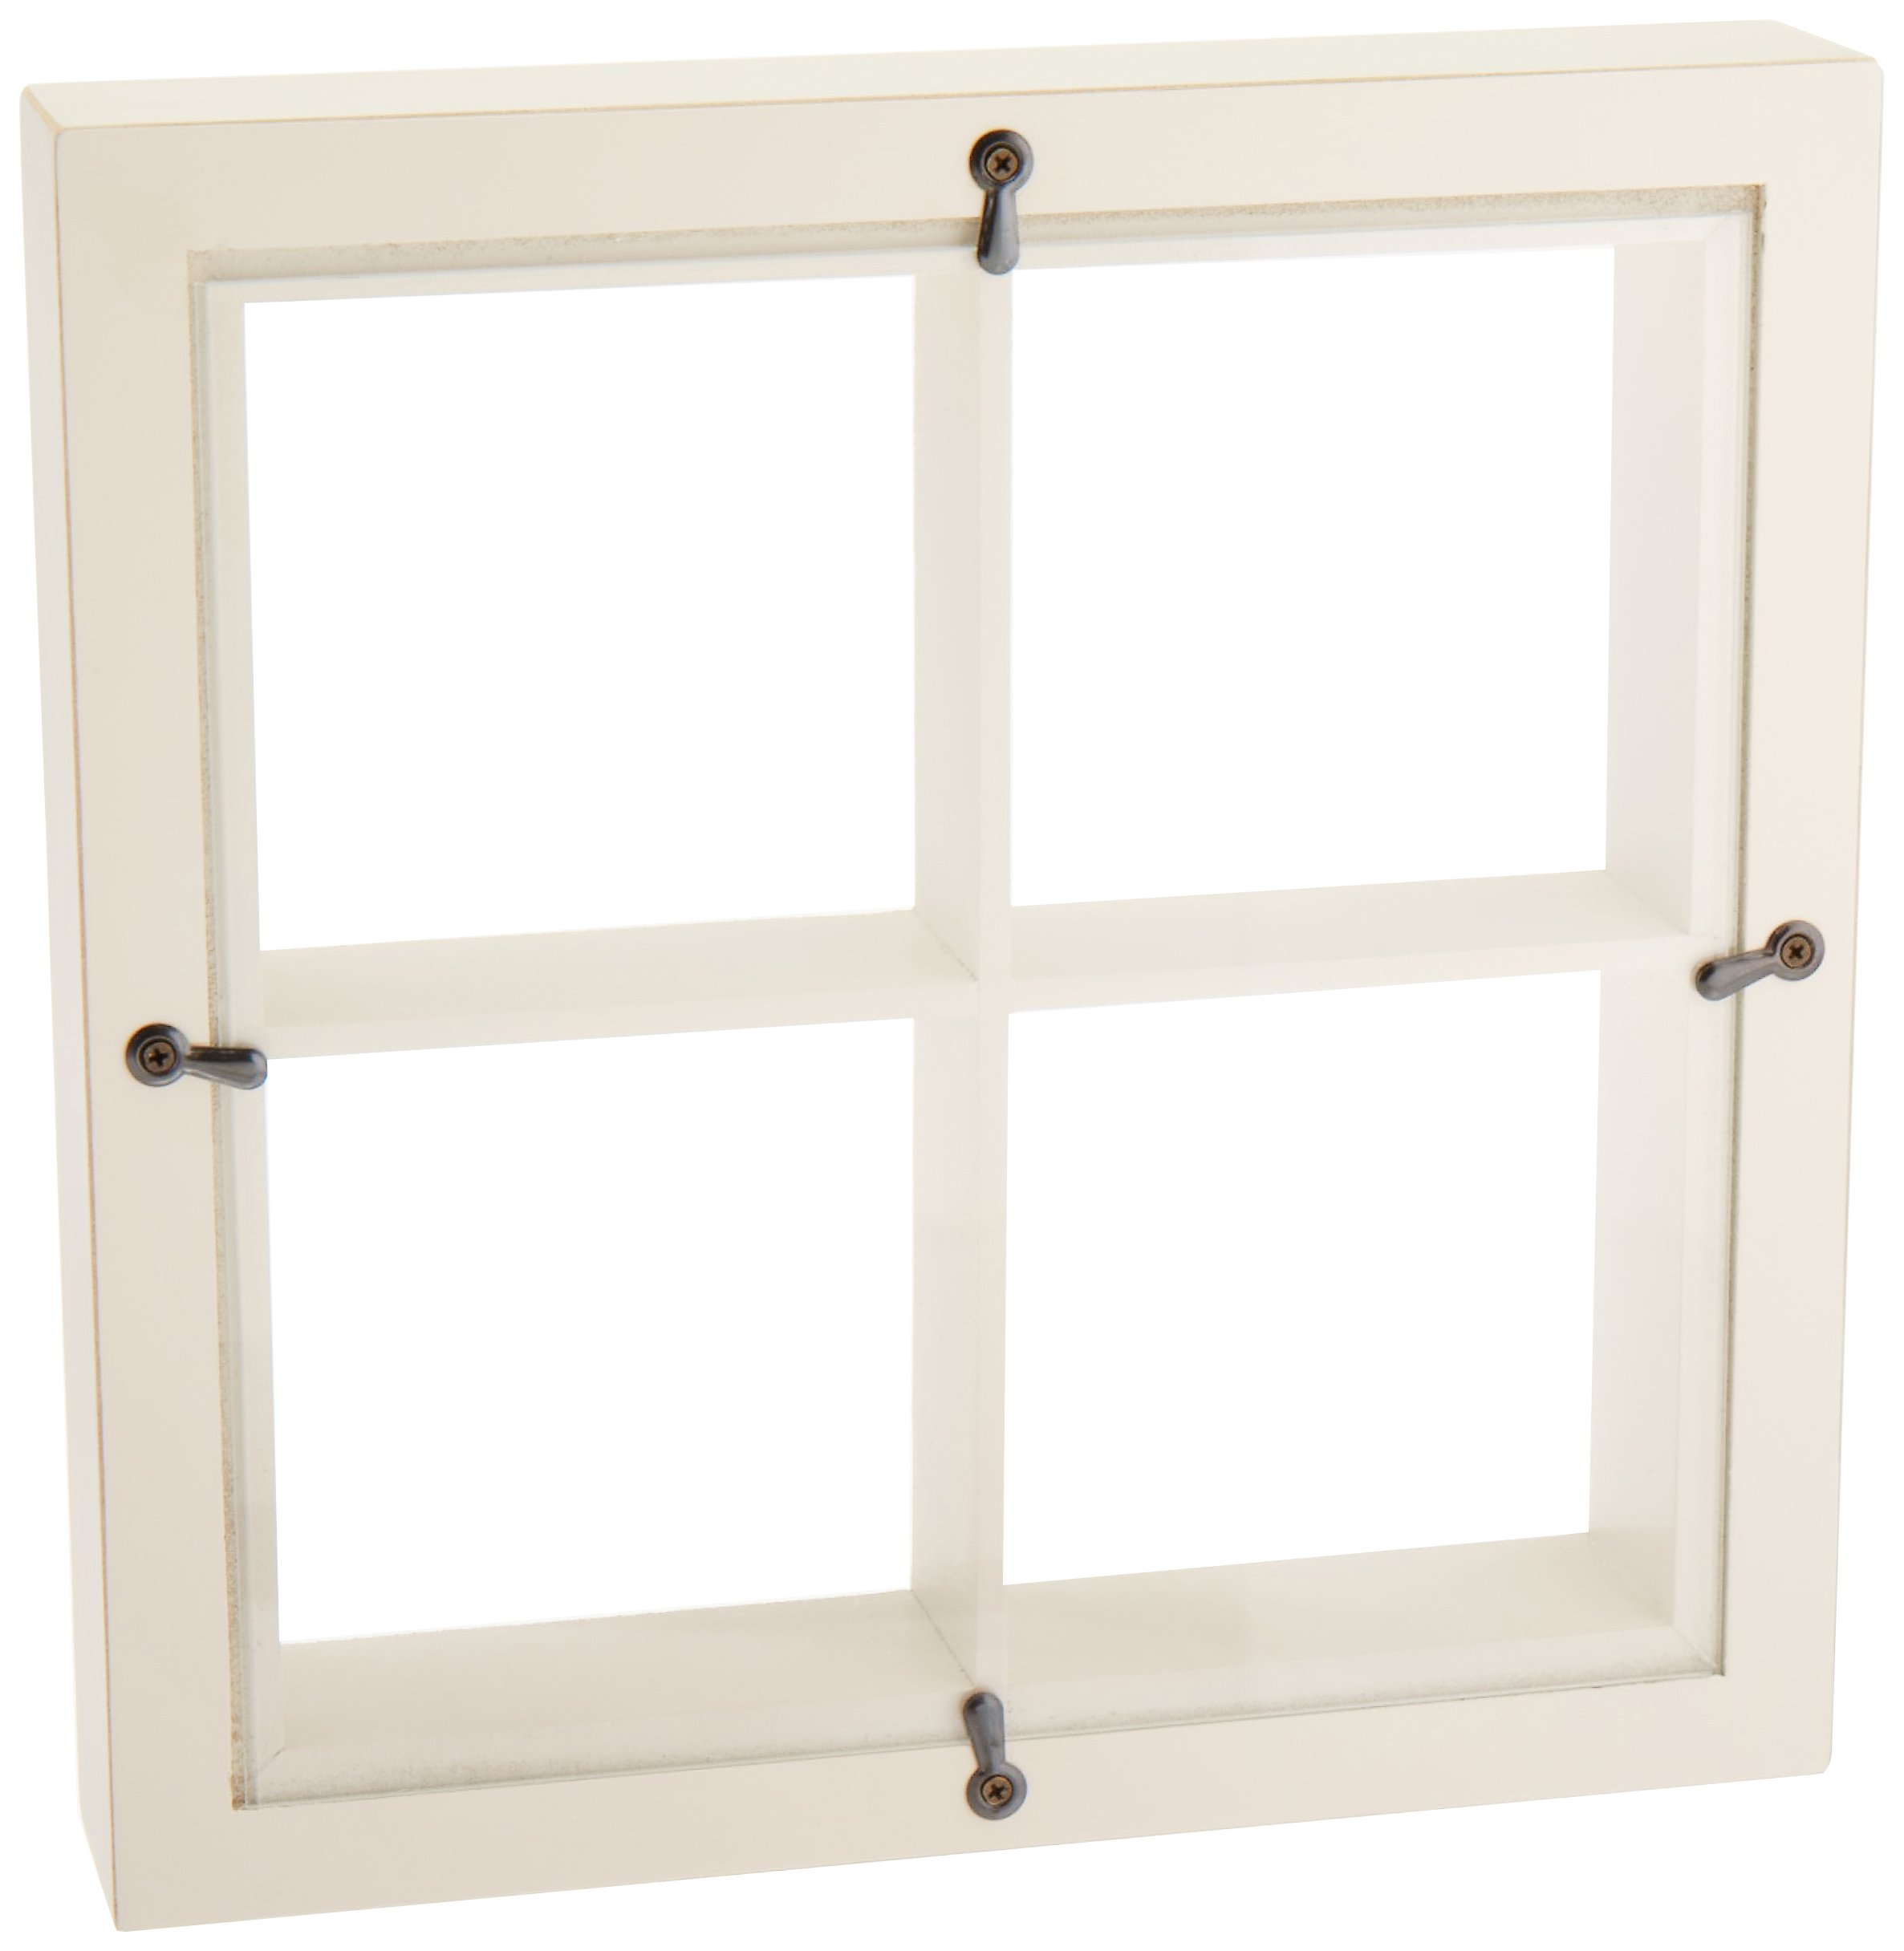 Graphic 45 Window Shadow Box, Ivory